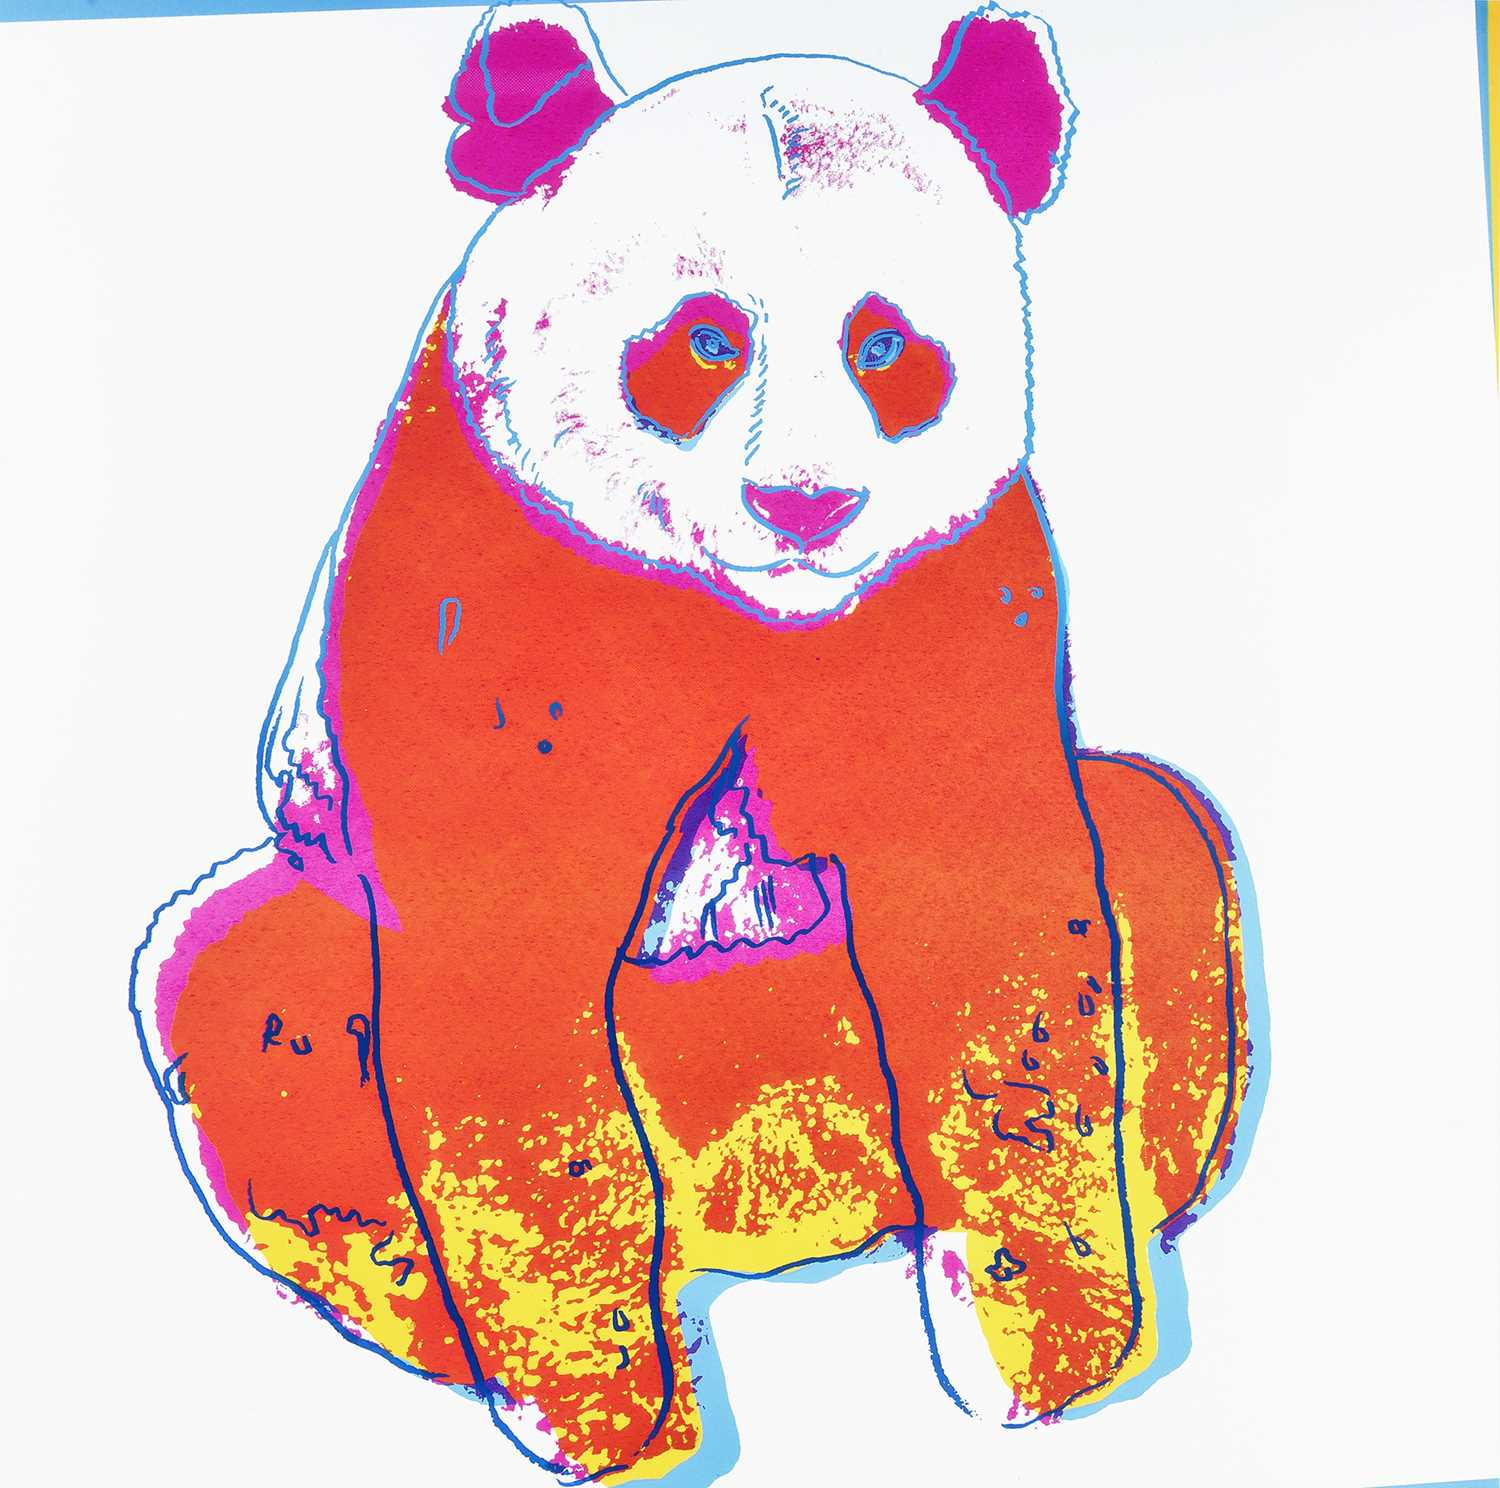 Lot 5-Andy Warhol (American 1928-1987), 'Giant Panda, from Endangered Species', 1983